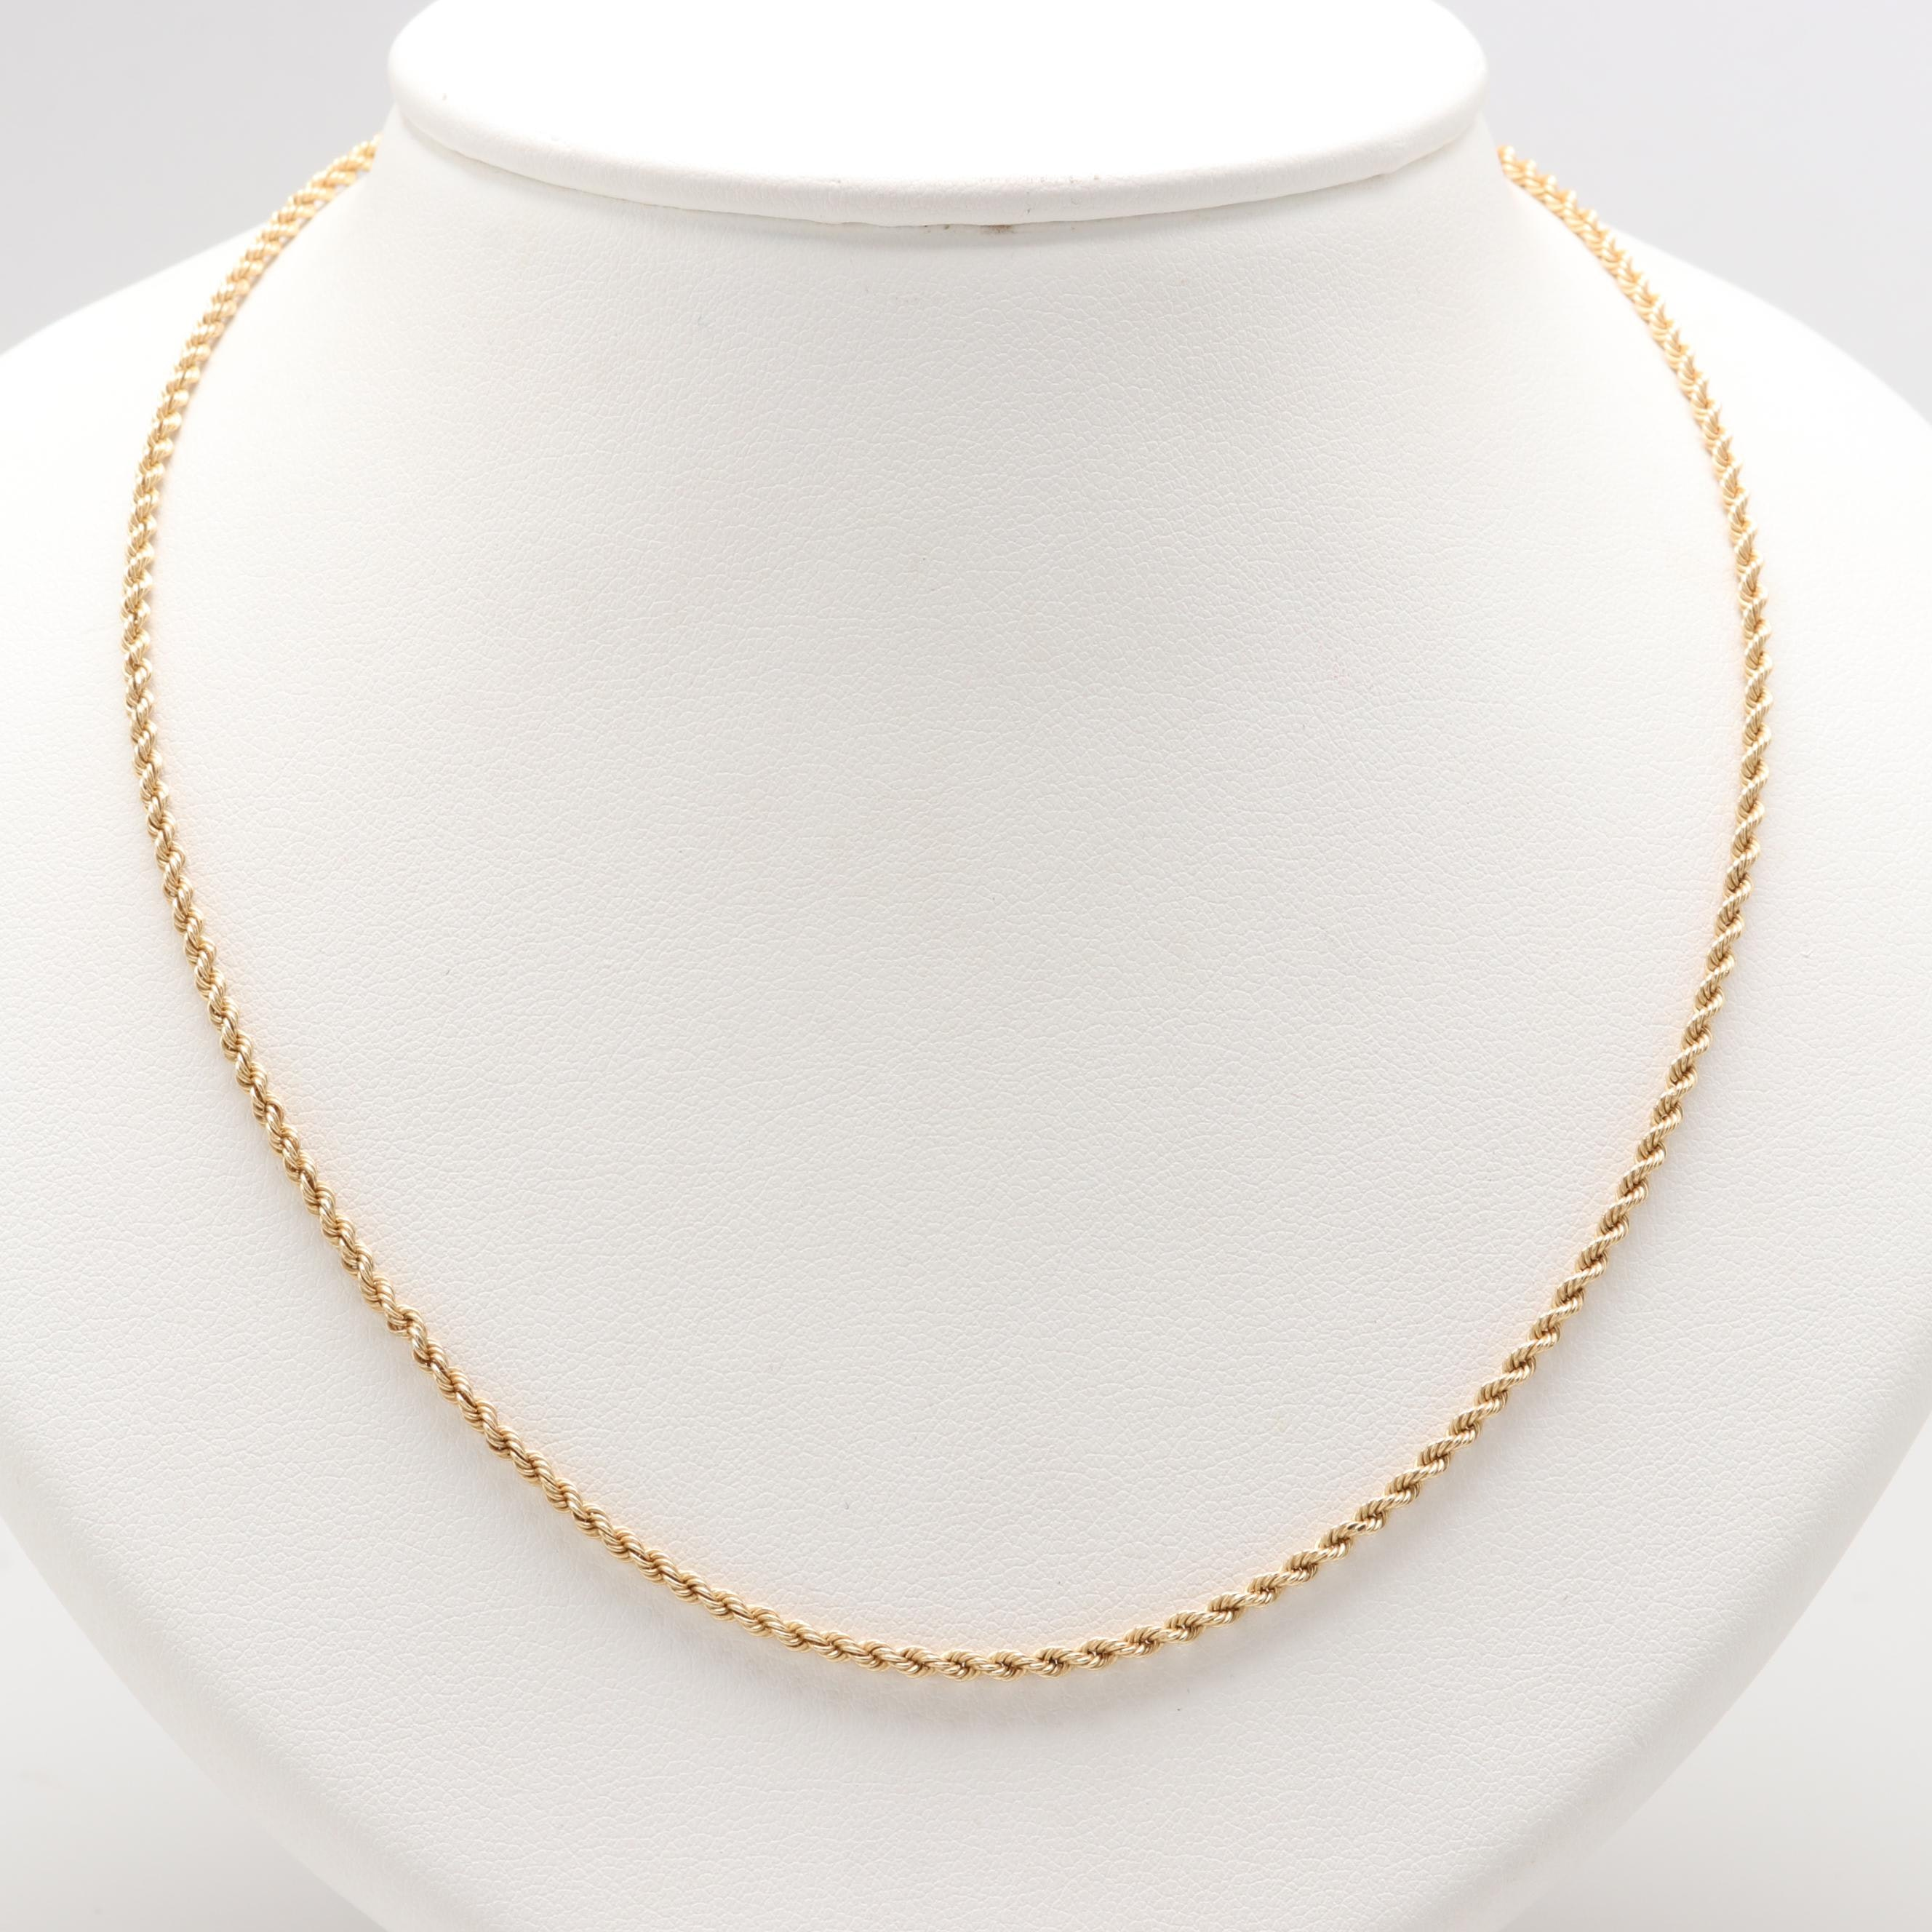 14K Yellow Gold Rope Twist Necklace